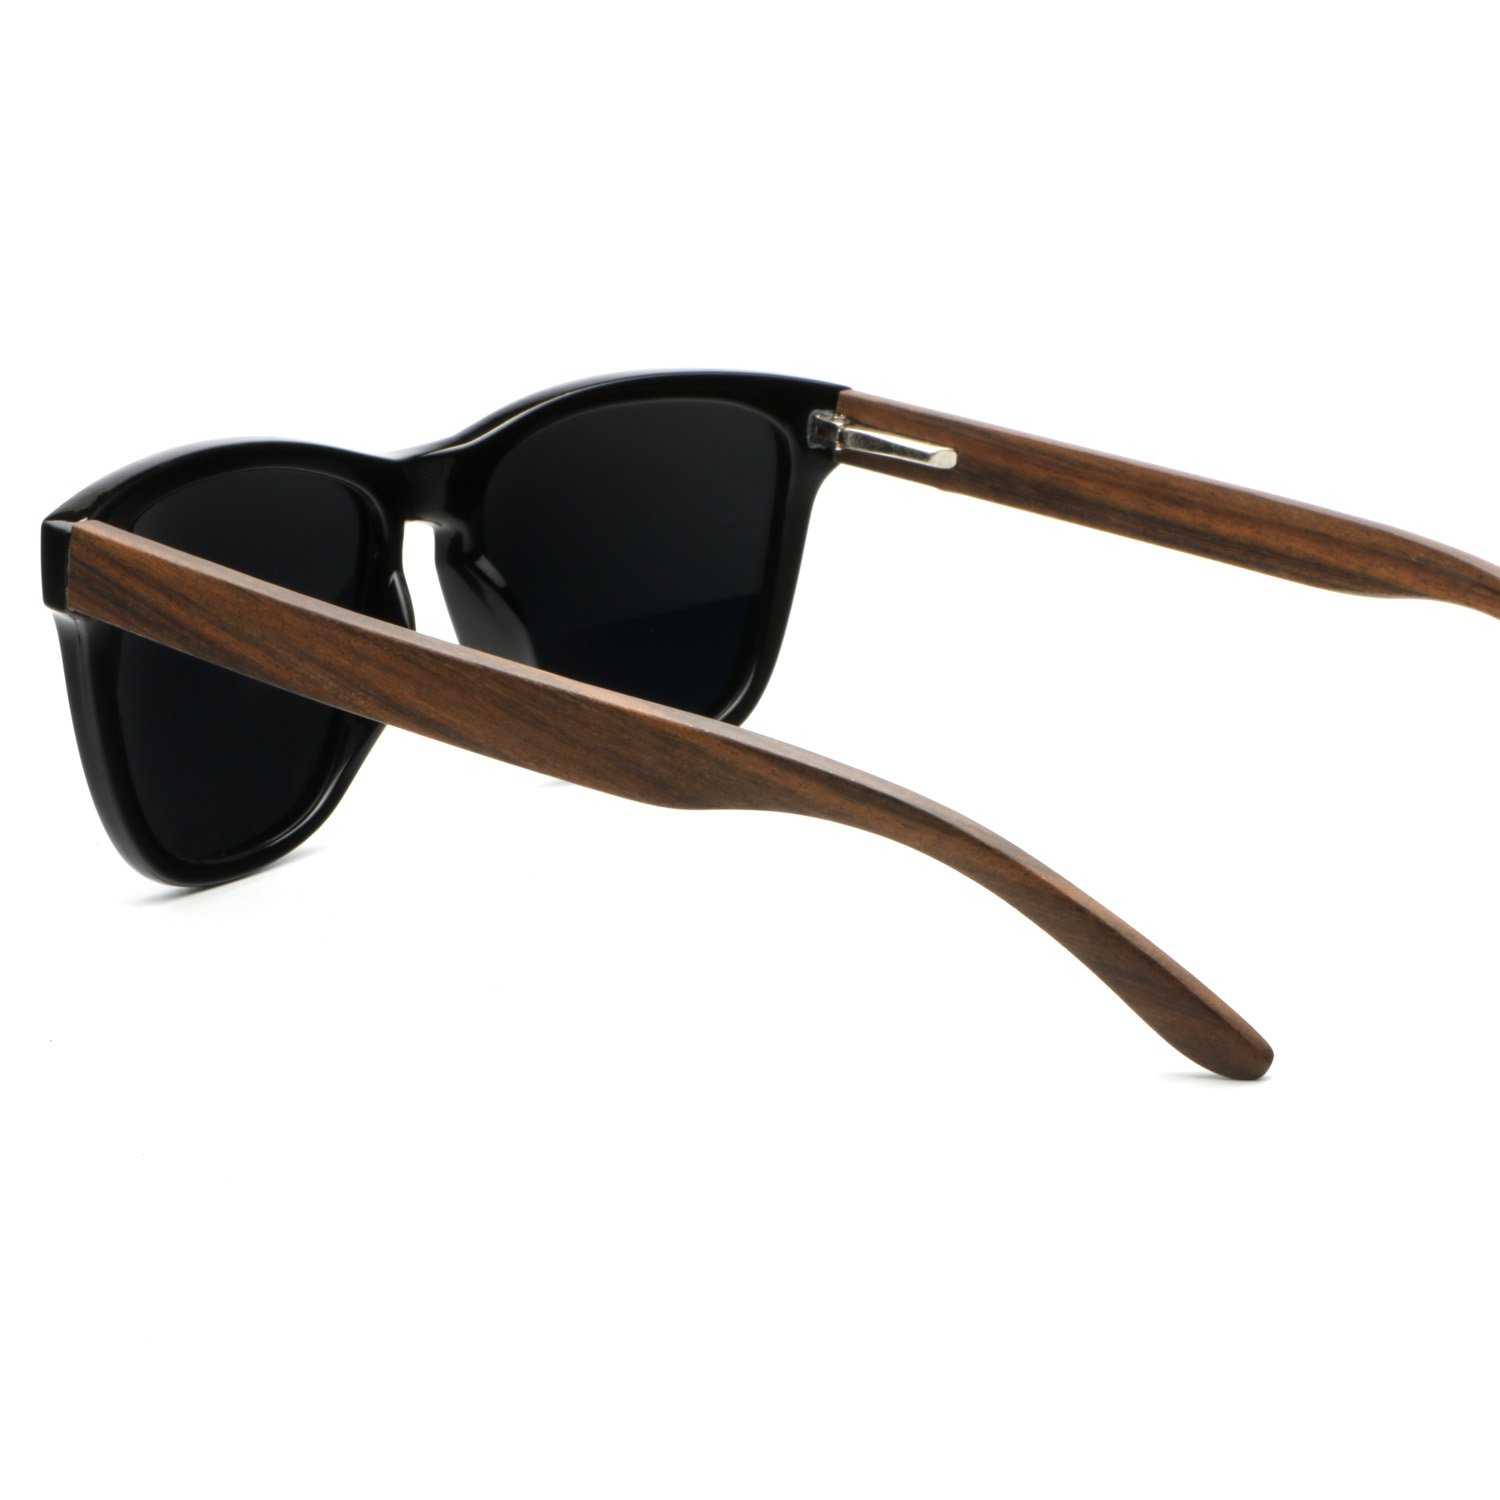 Ablibi Bamboo Wooden Wayfarer Sunglasses Polarized Driving Eyewear in Wood Box (Ebony, Grey)